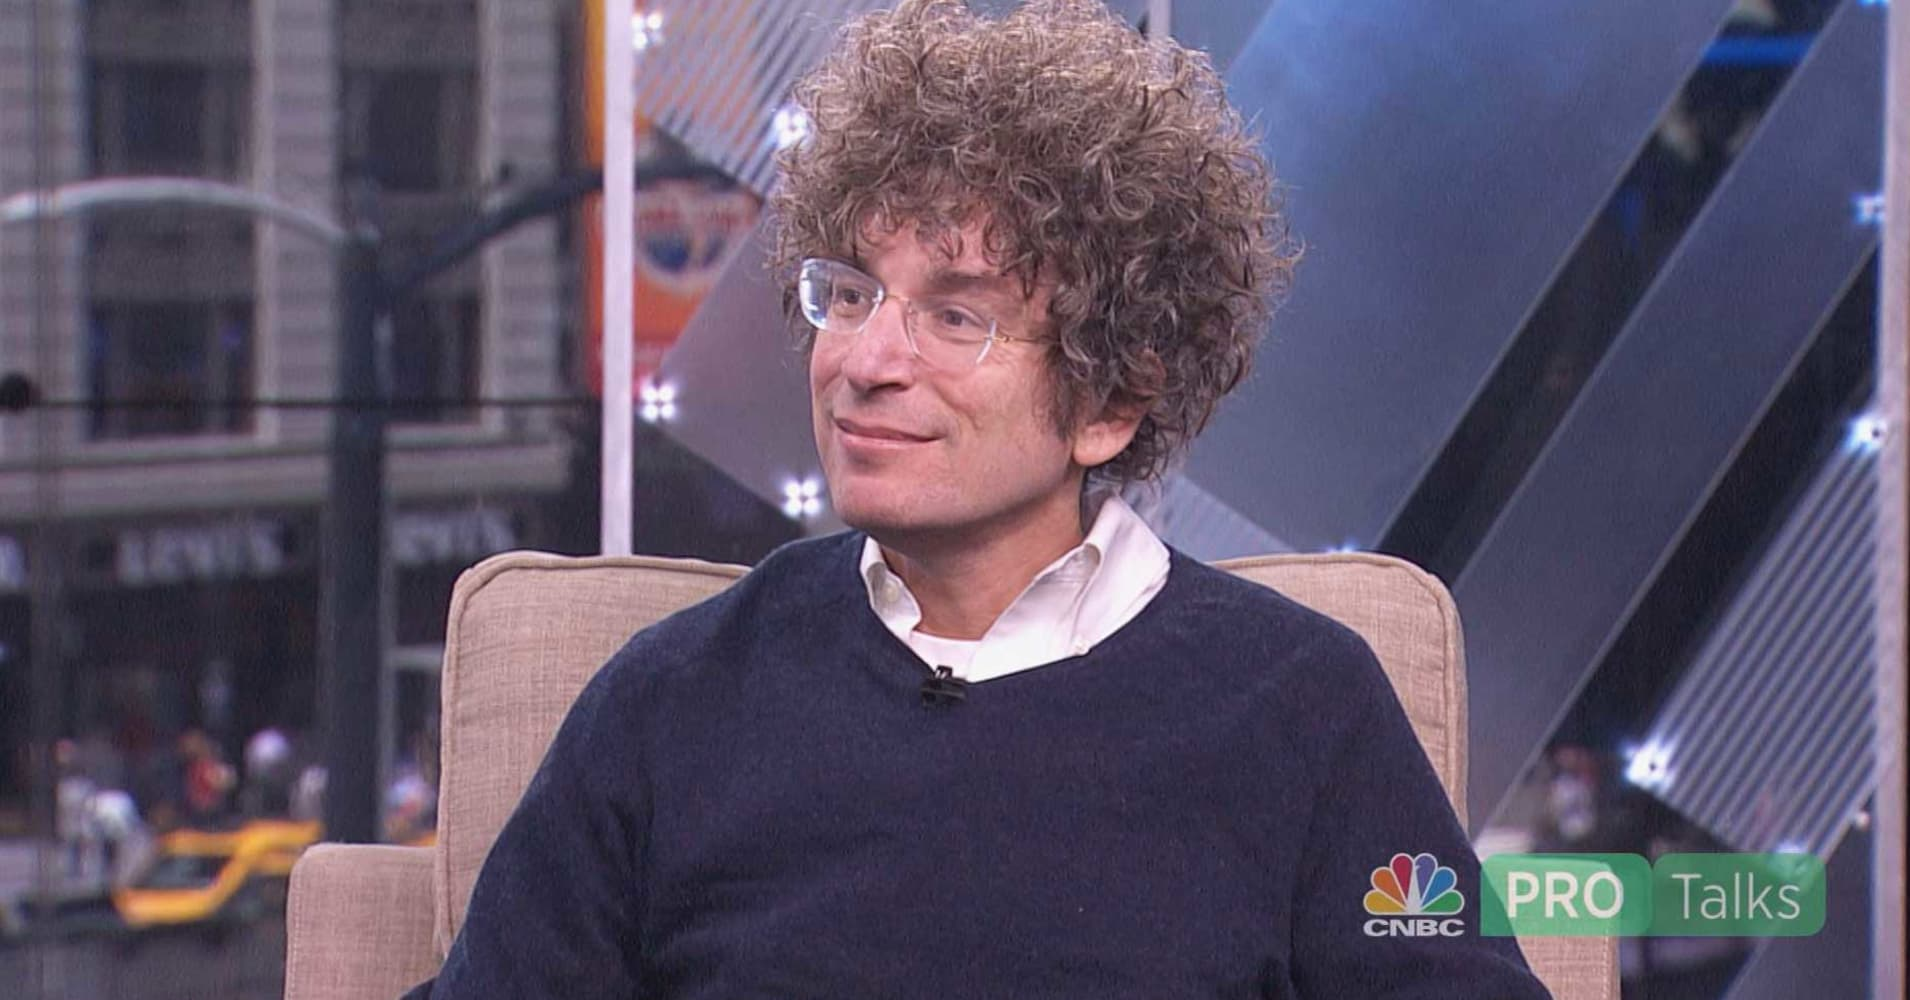 James Altucher's 10 predictions about where bitcoin and cryptocurrencies are headed